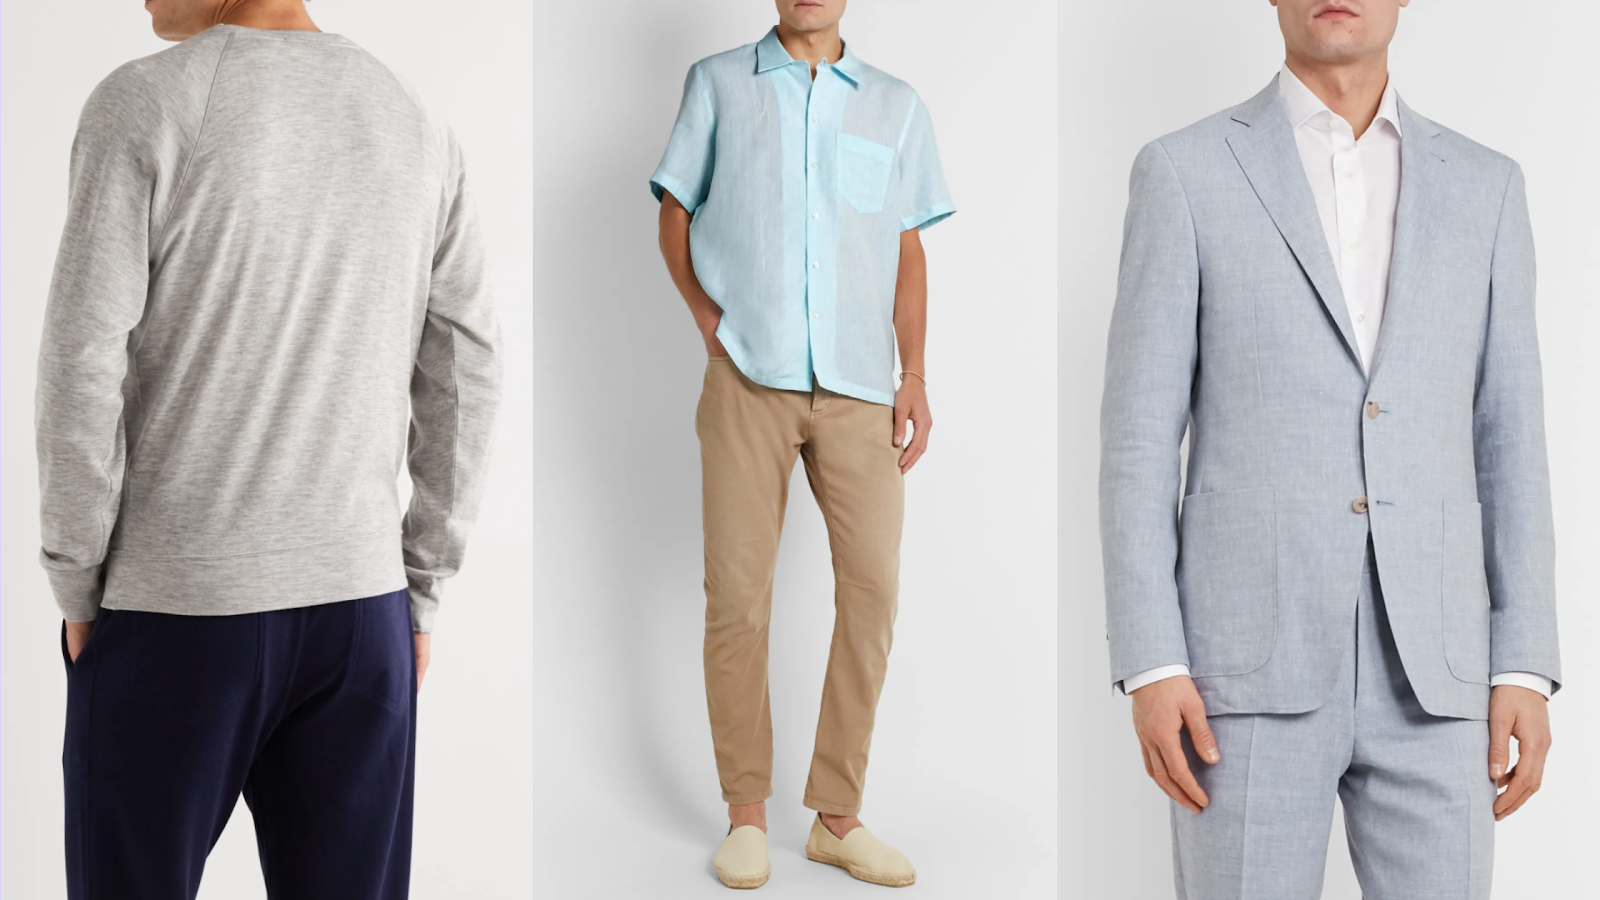 Shop luxury men's apparel from Mr. Porter